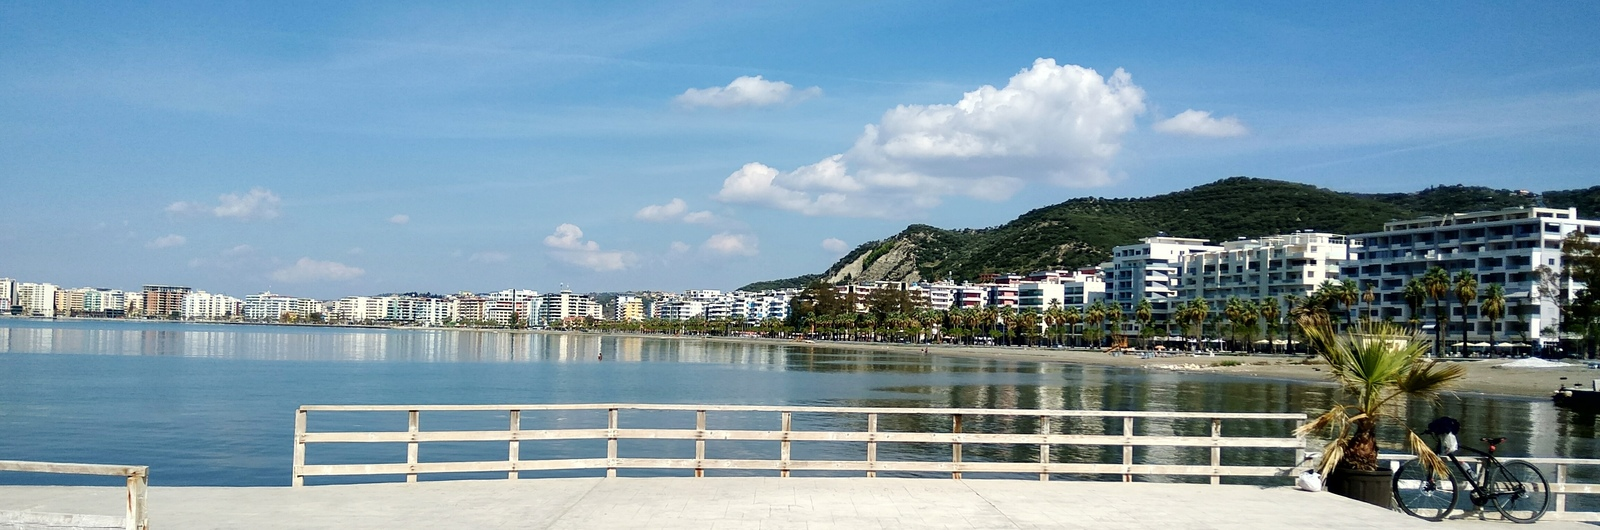 vlora city header